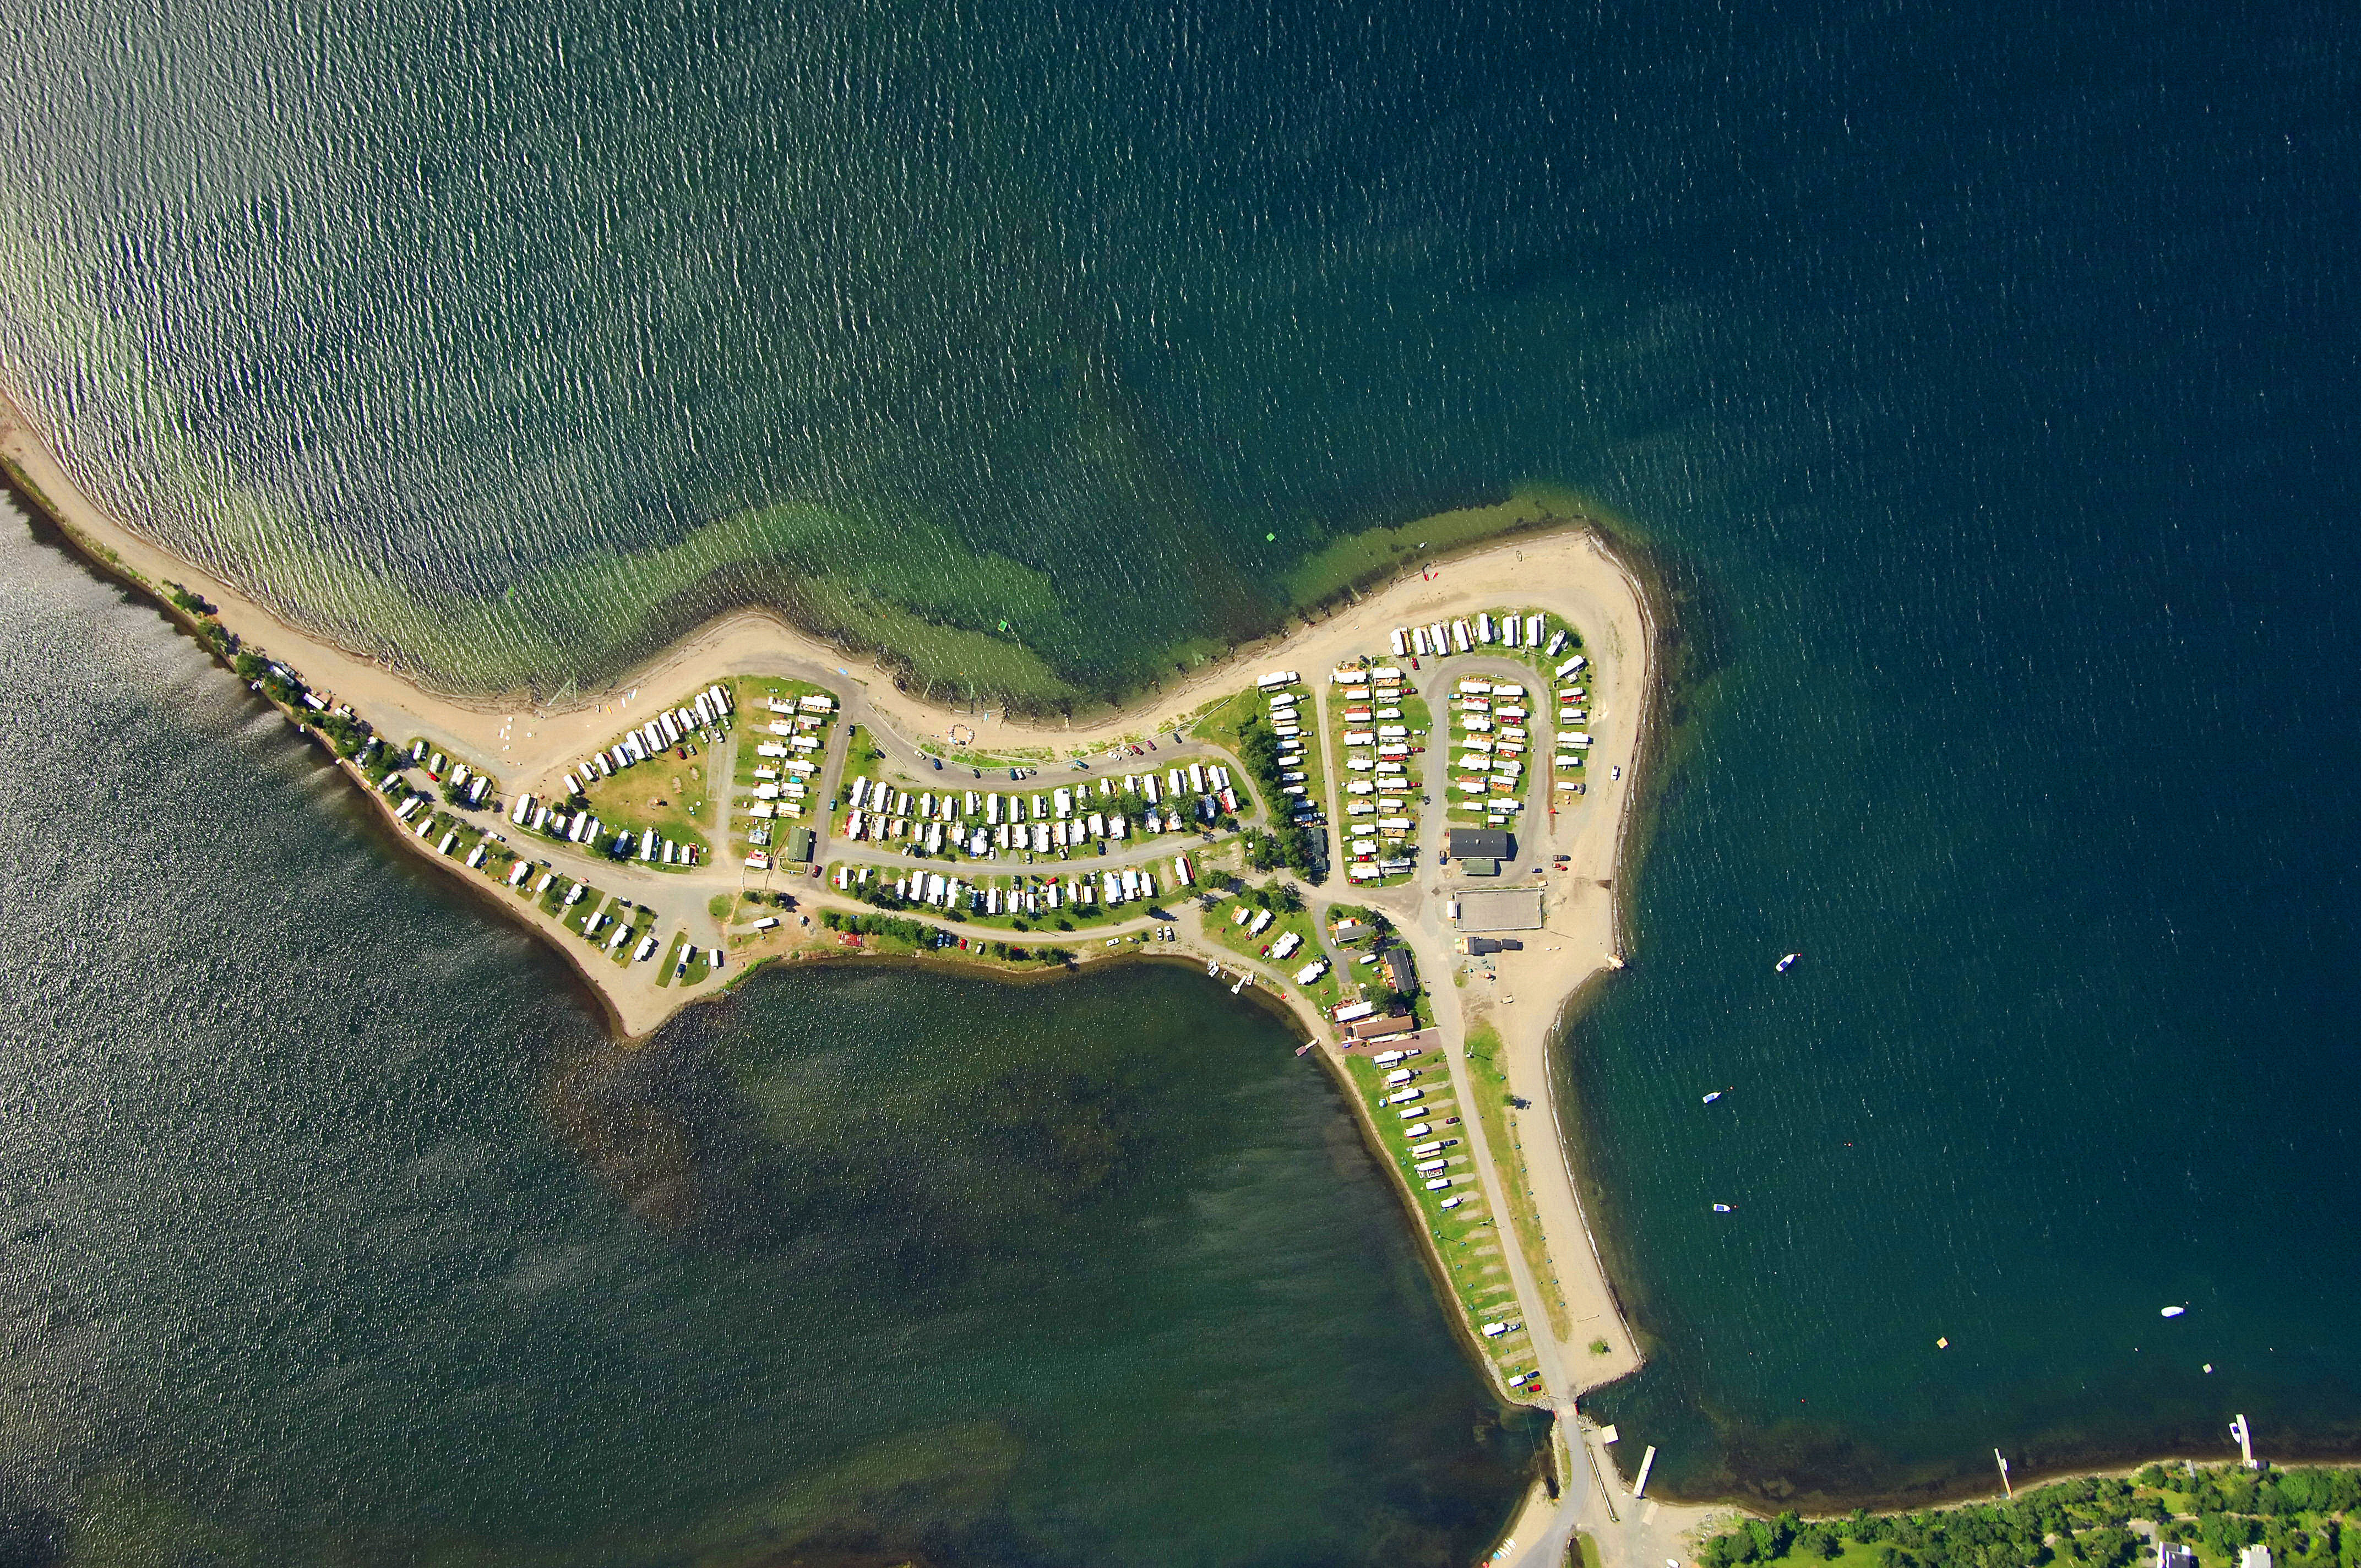 Ben Eoin Beach Rv Resort Amp Campground In Sydney Ns Canada Marina Reviews Phone Number